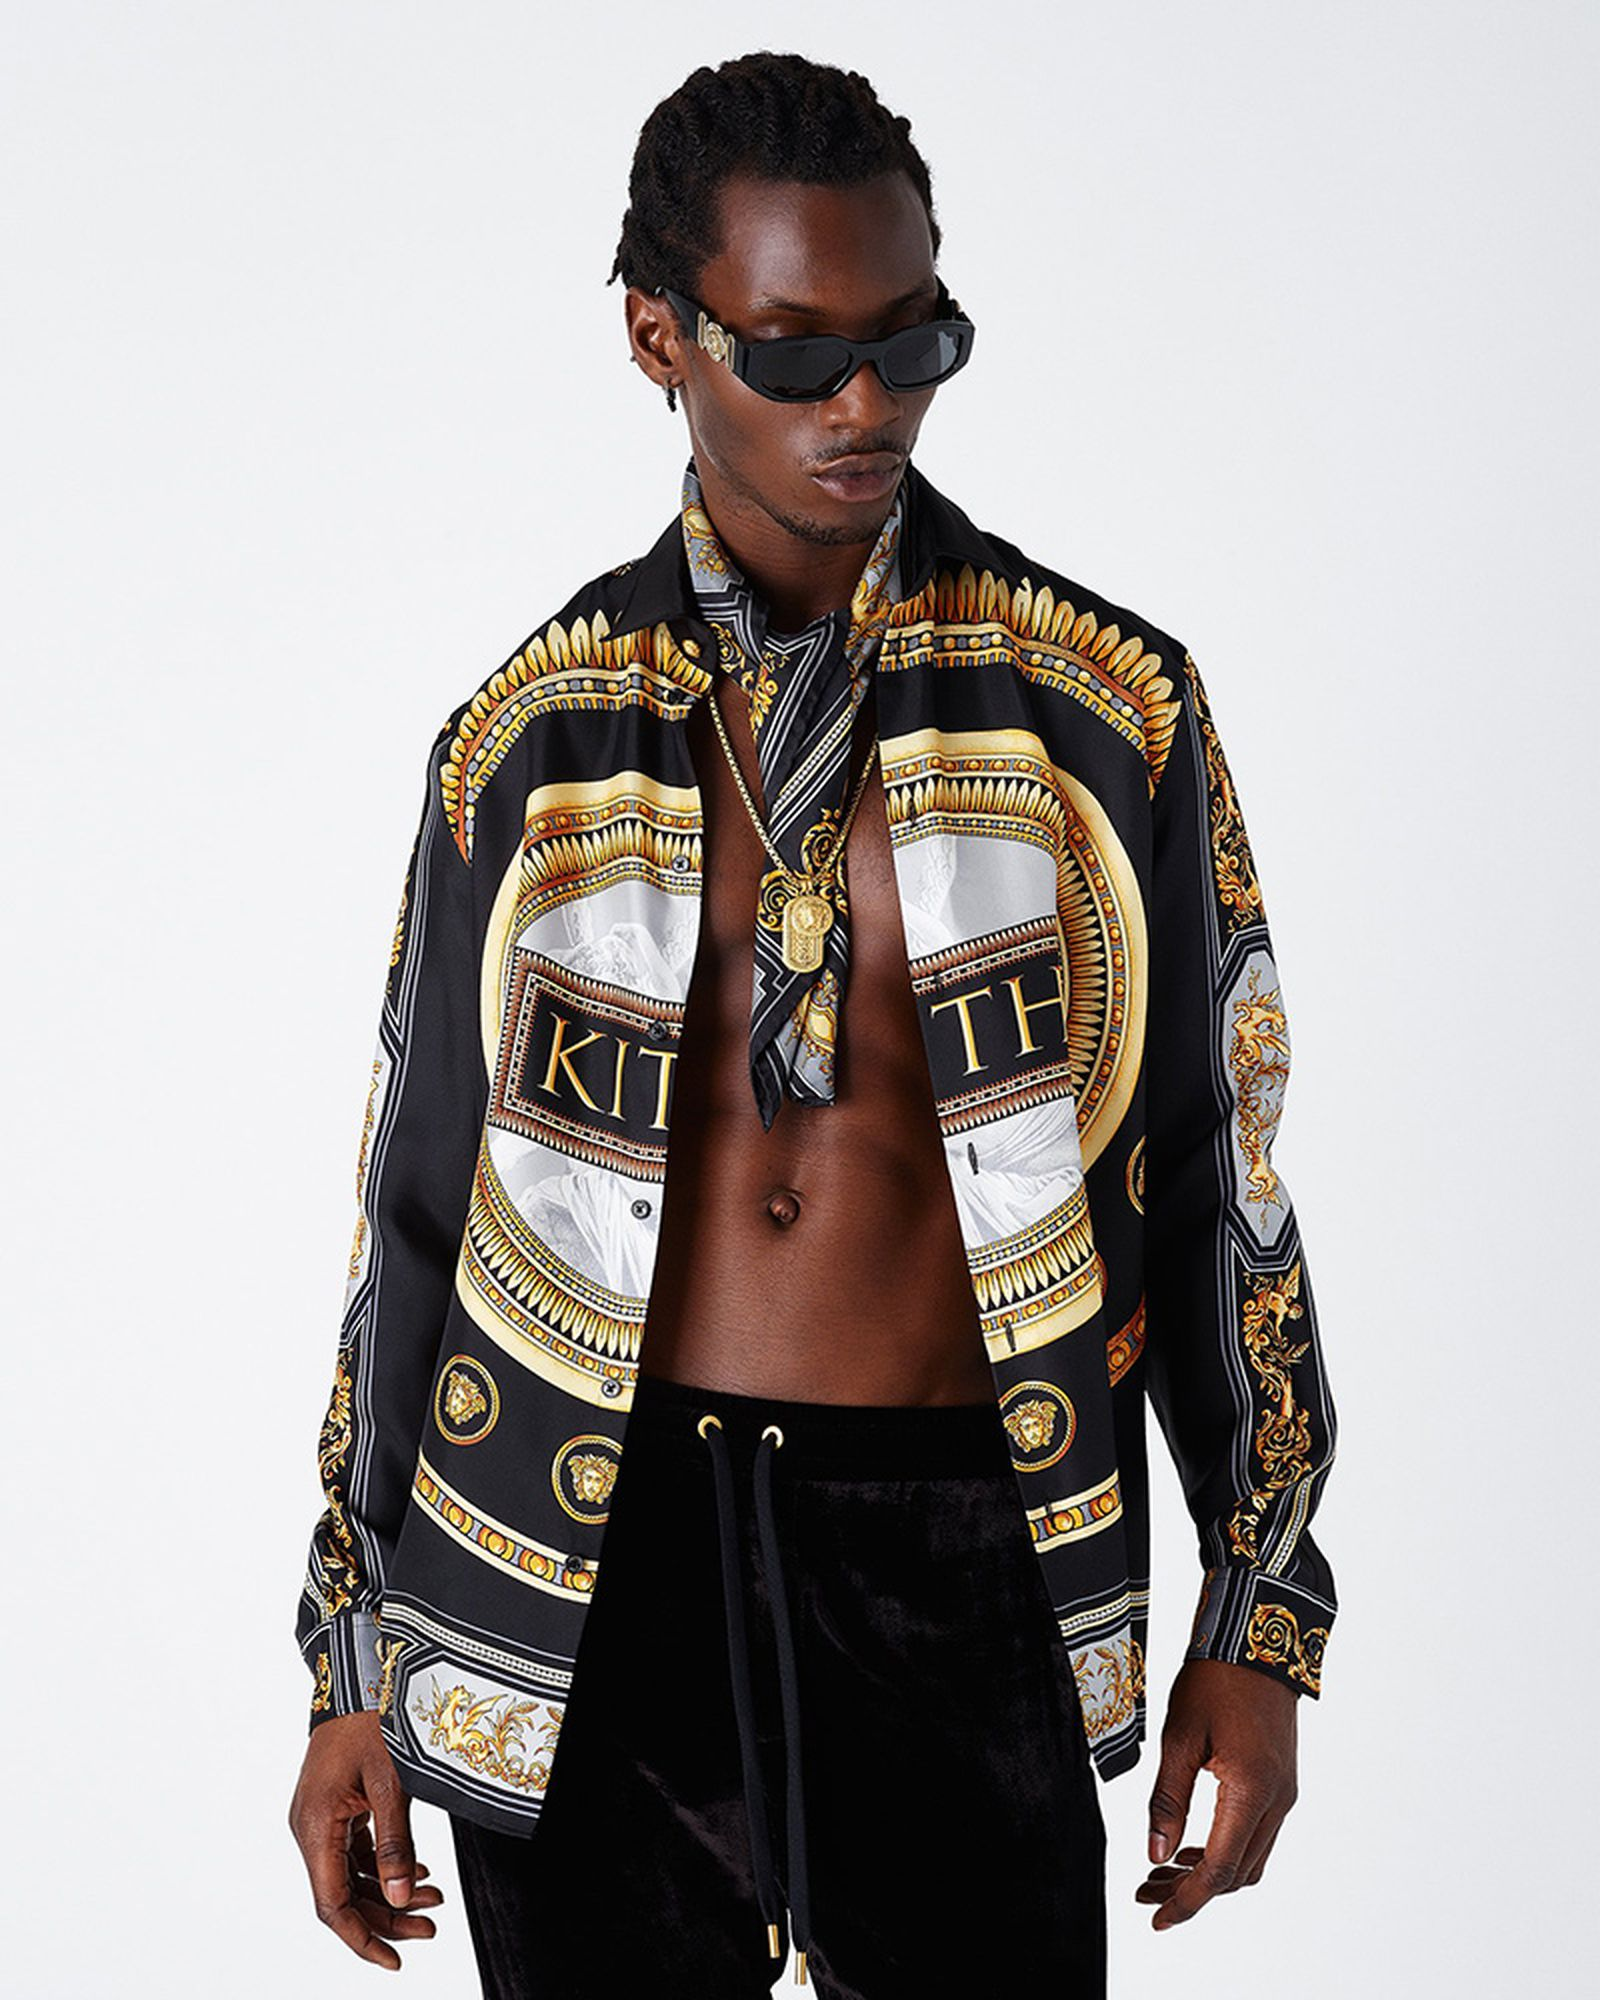 2010s-decade-luxury-streetwear-became-one-11